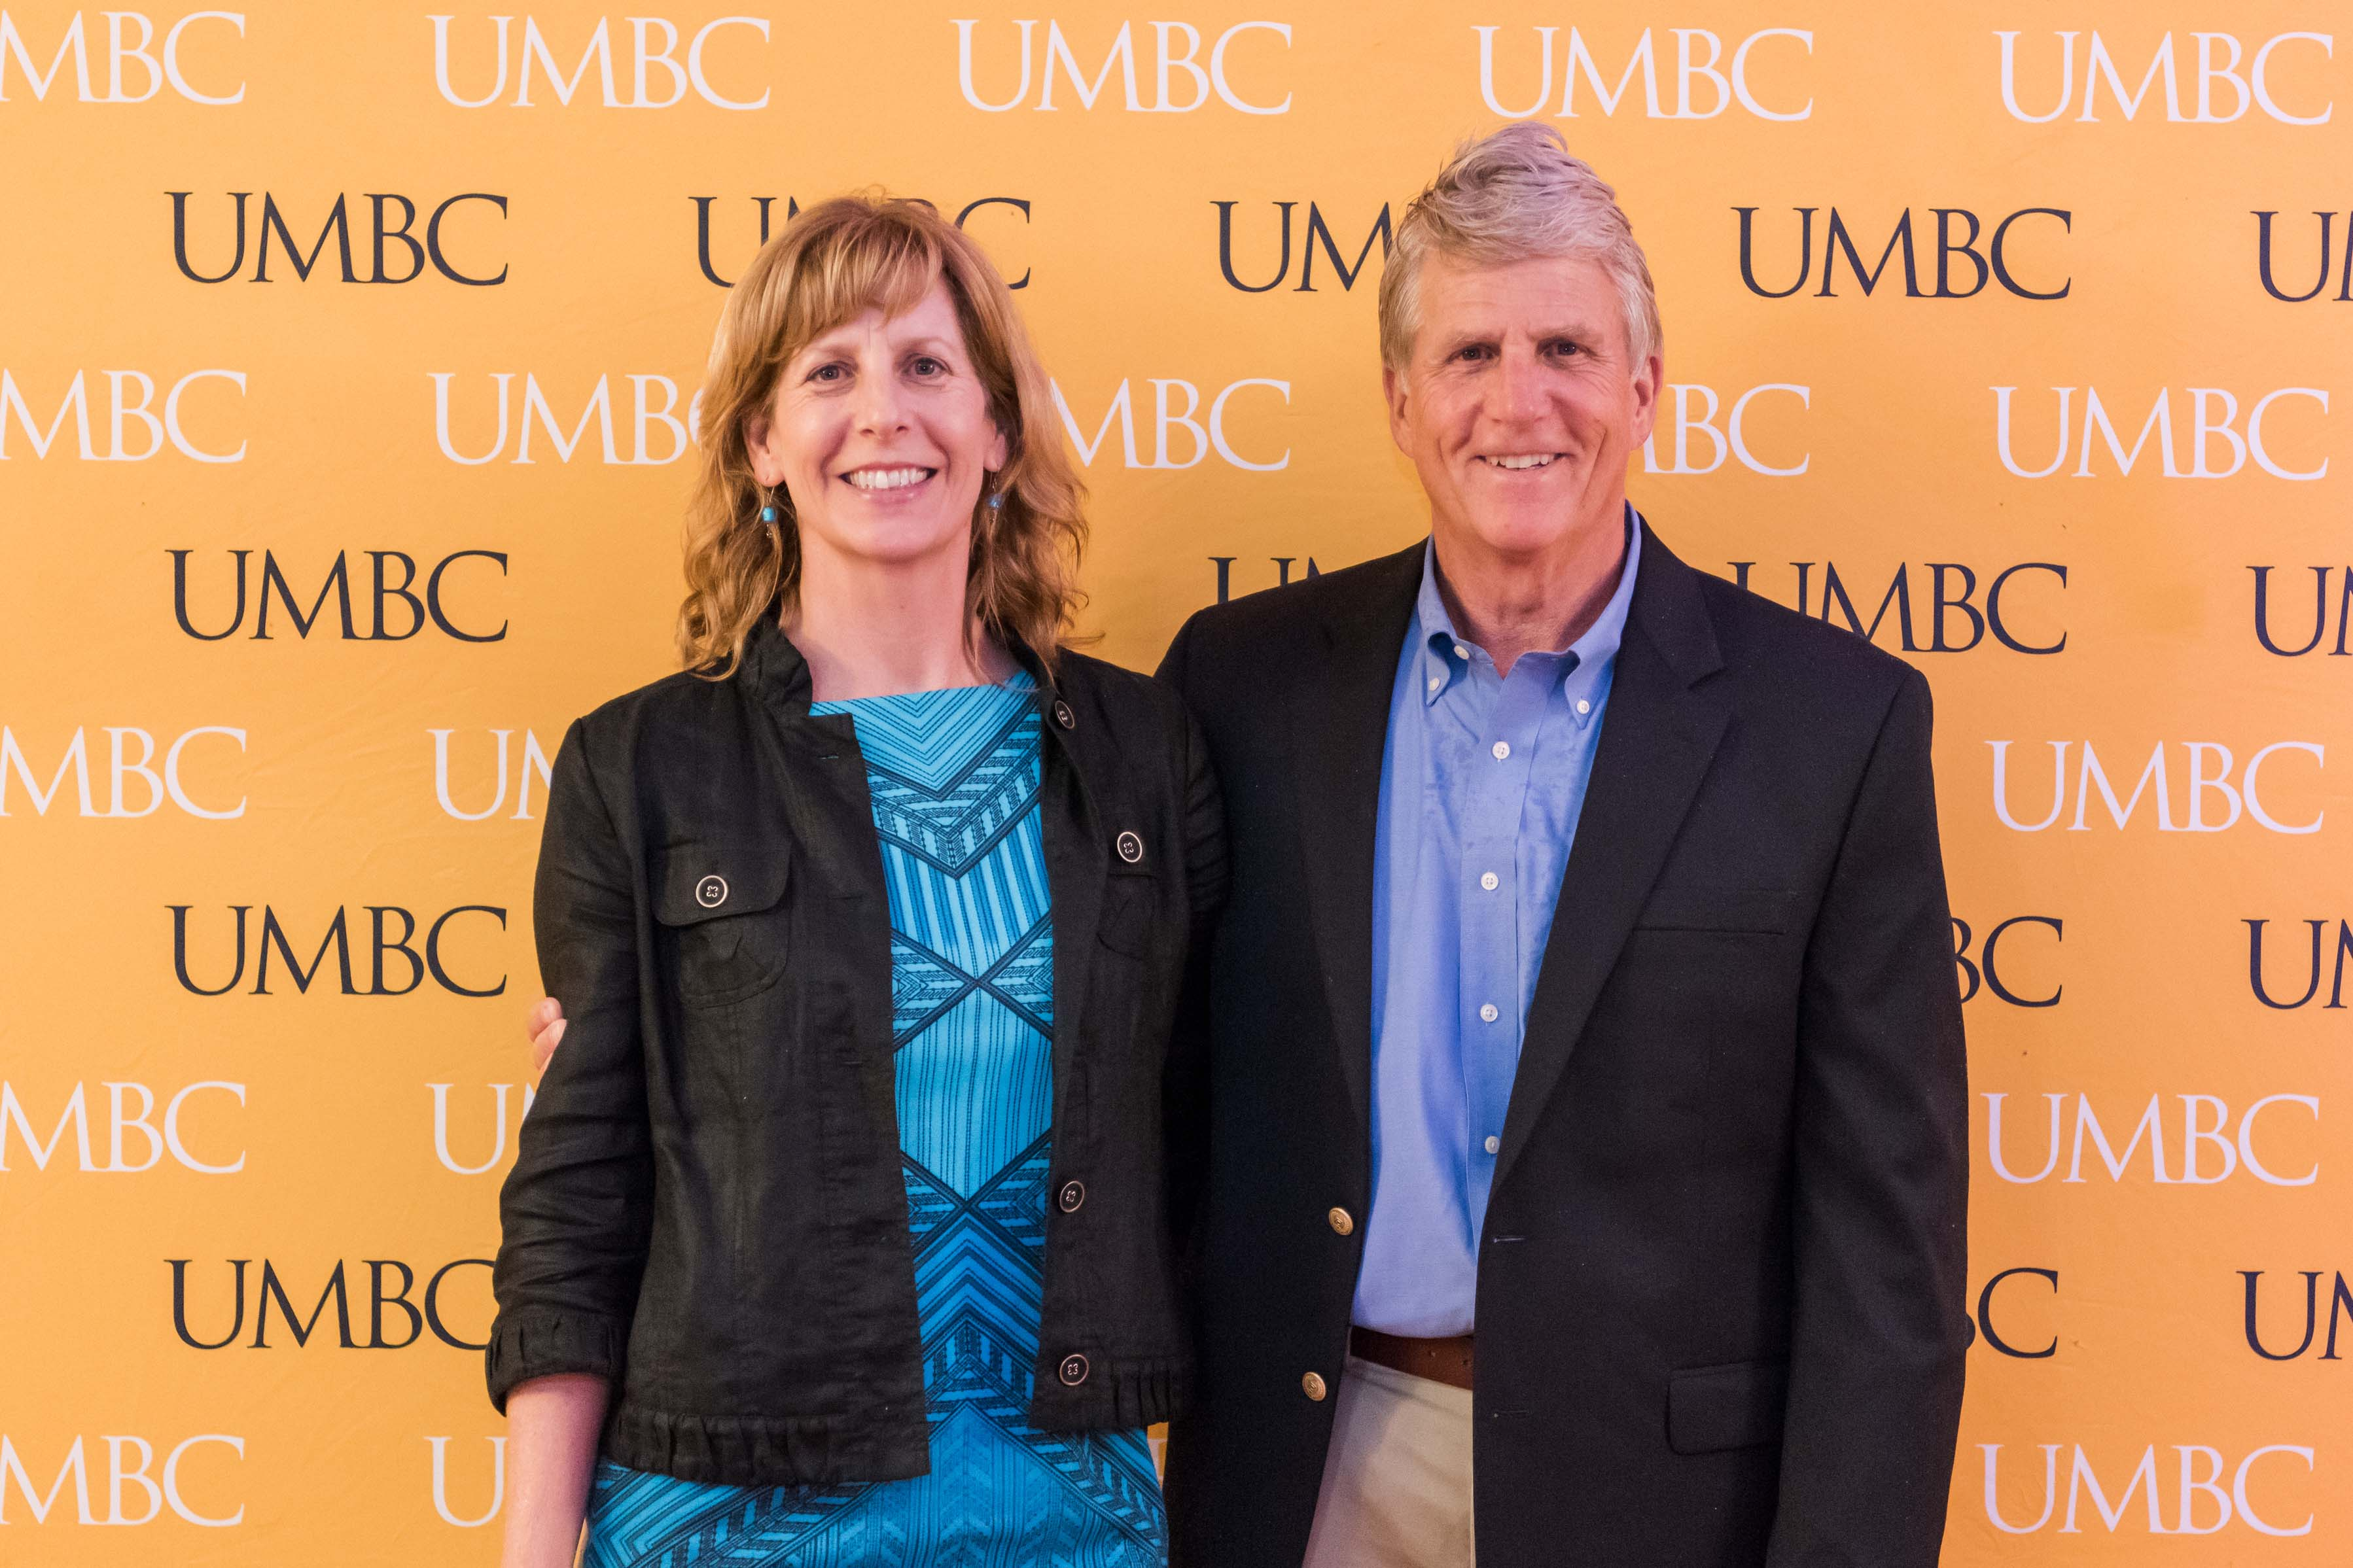 Man and woman pose in front of UMBC wall for wine tasting